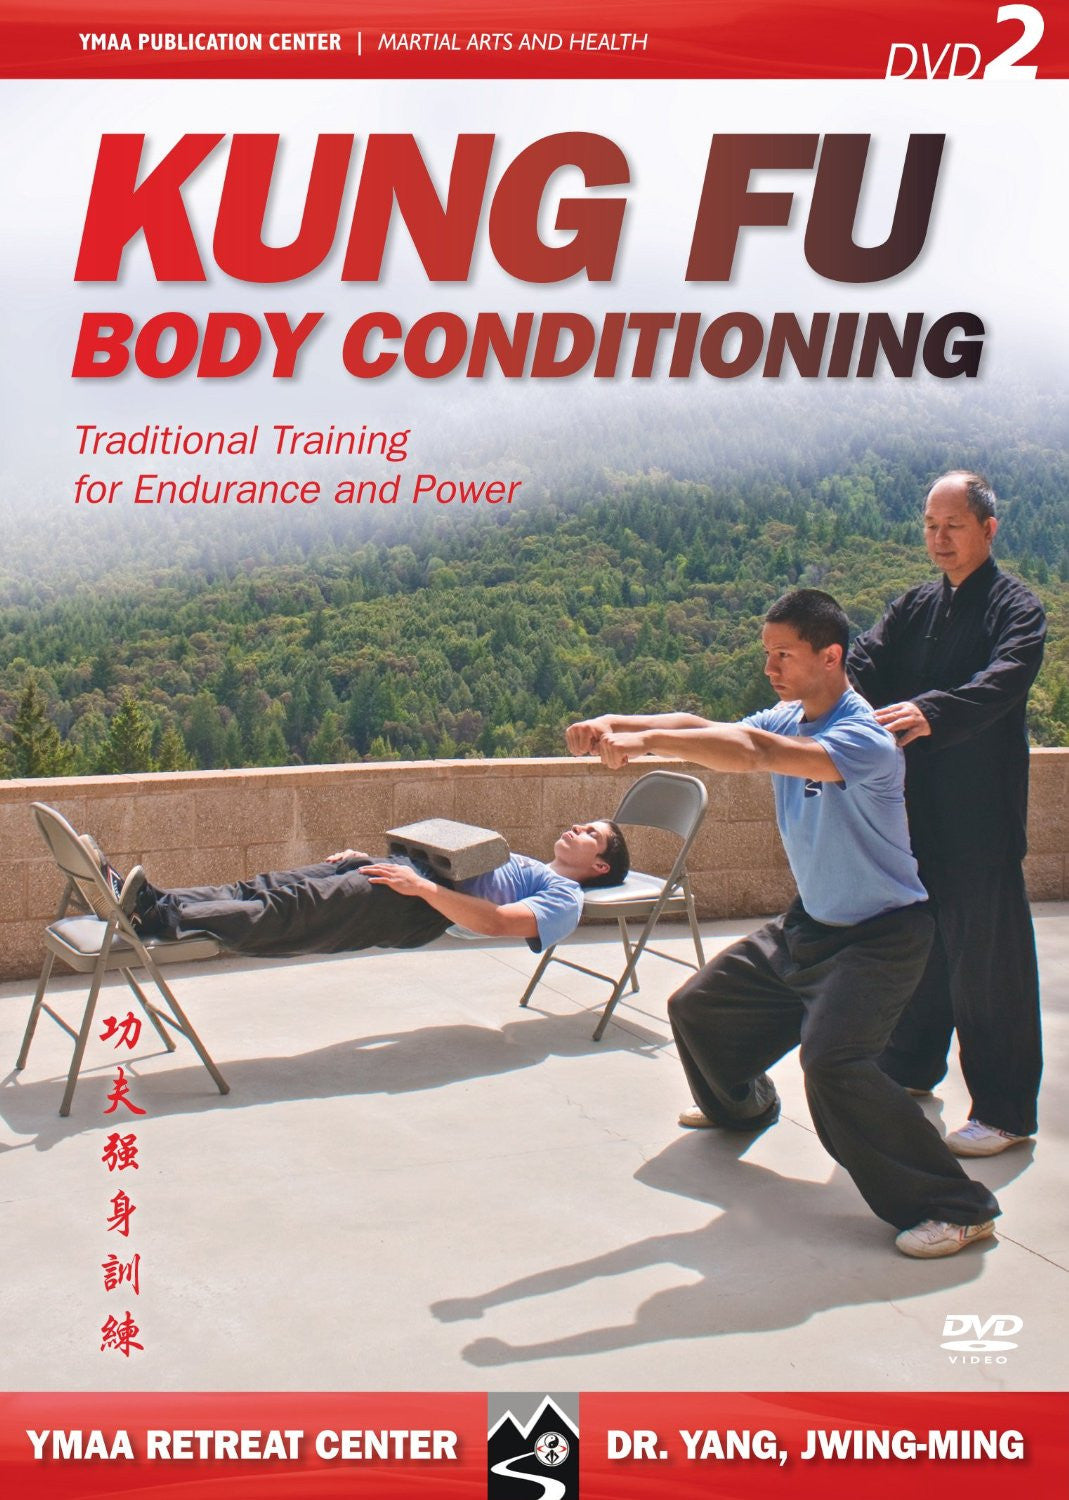 Kung Fu Body Conditioning 2 DVD by Dr. Yang, Jwing-Ming 1